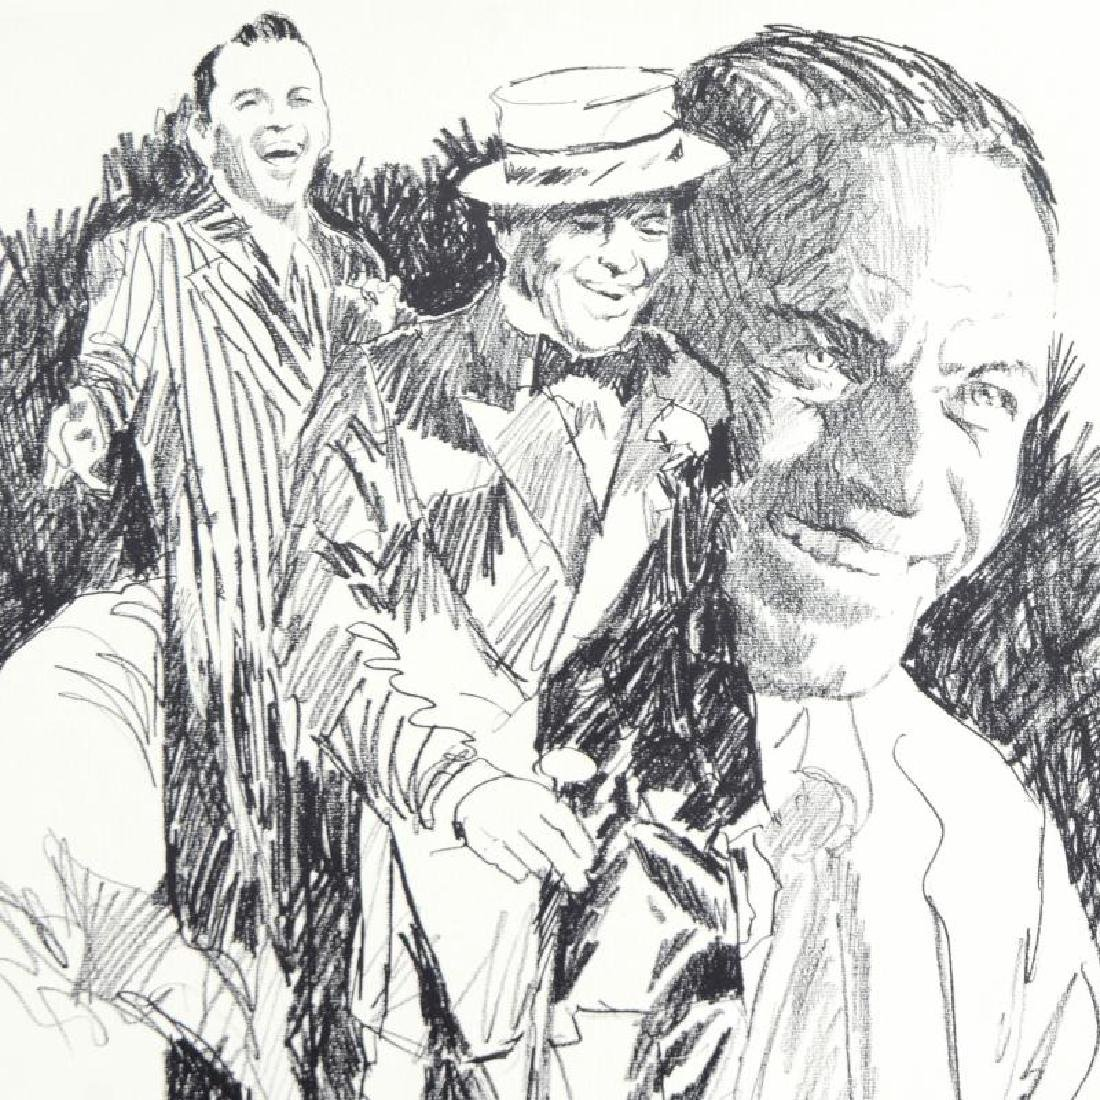 Sinatra Limited Edition Serigraph by Paul Blaine Henrie - 4